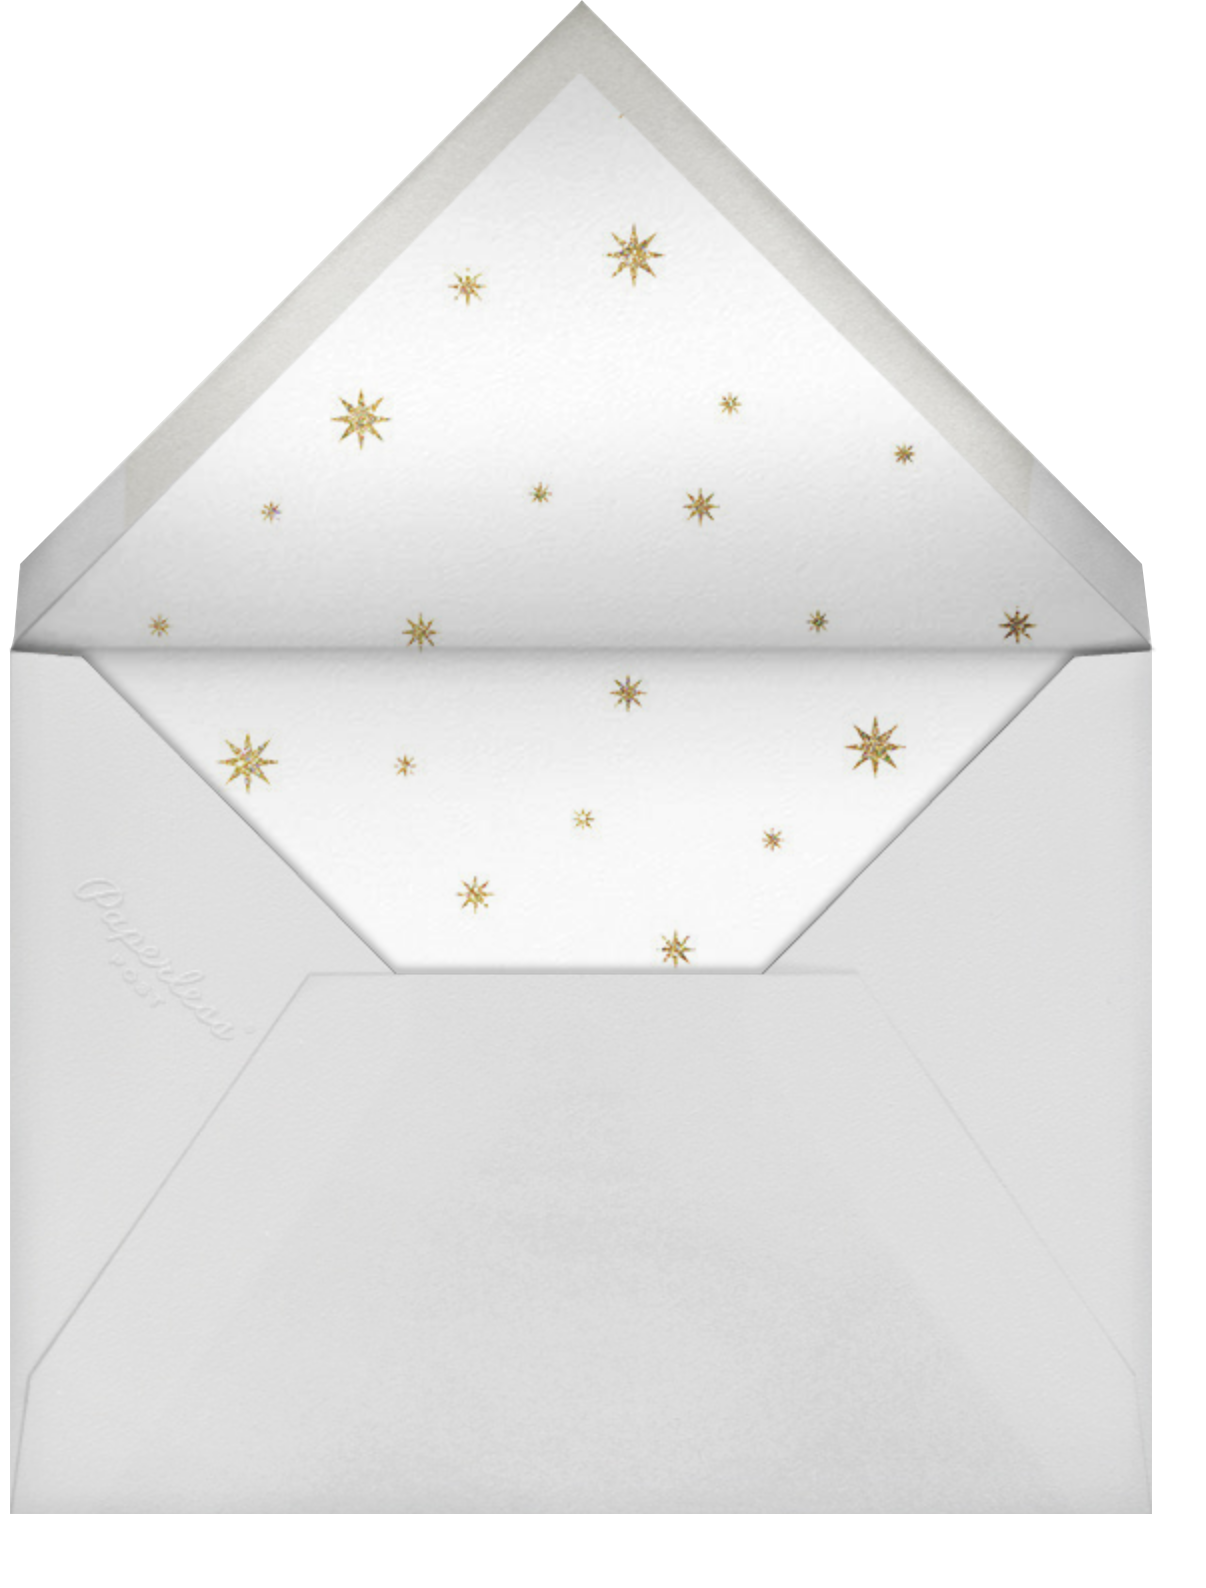 Do Drop By Bears - Paperless Post - Cocktail party - envelope back